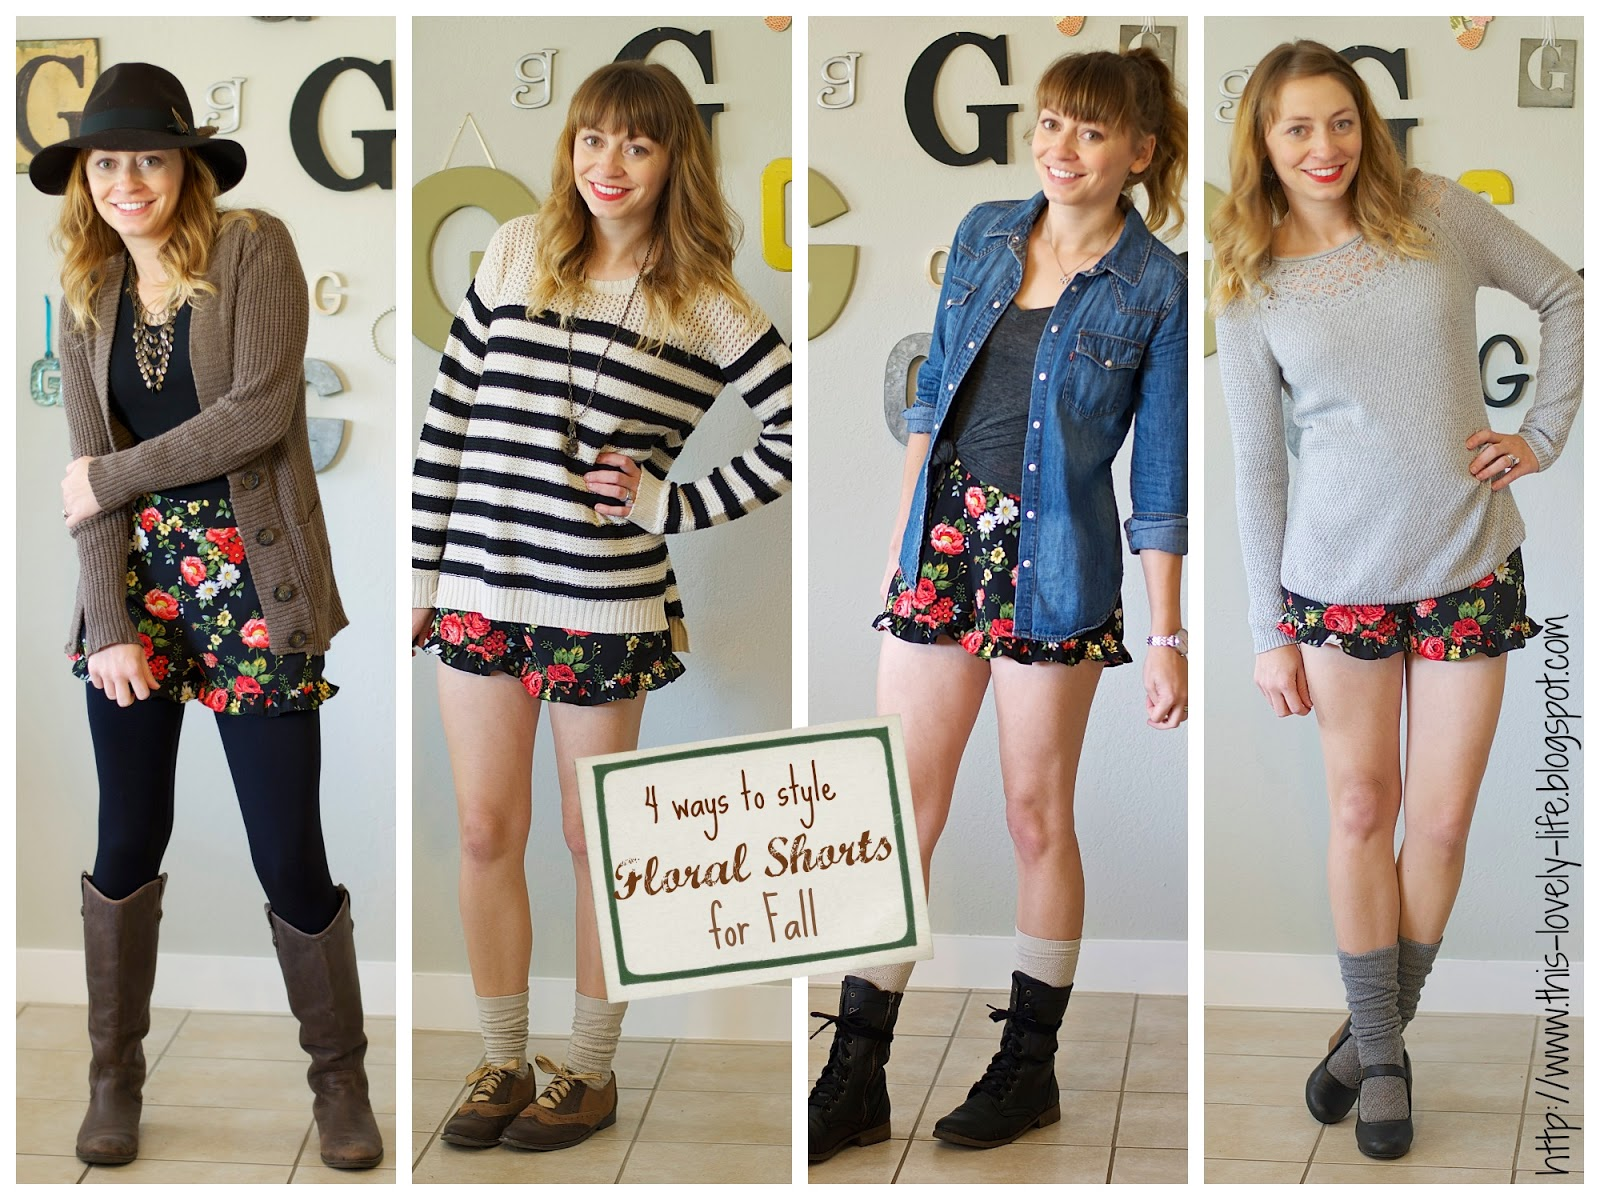 Transition floral shorts for fall